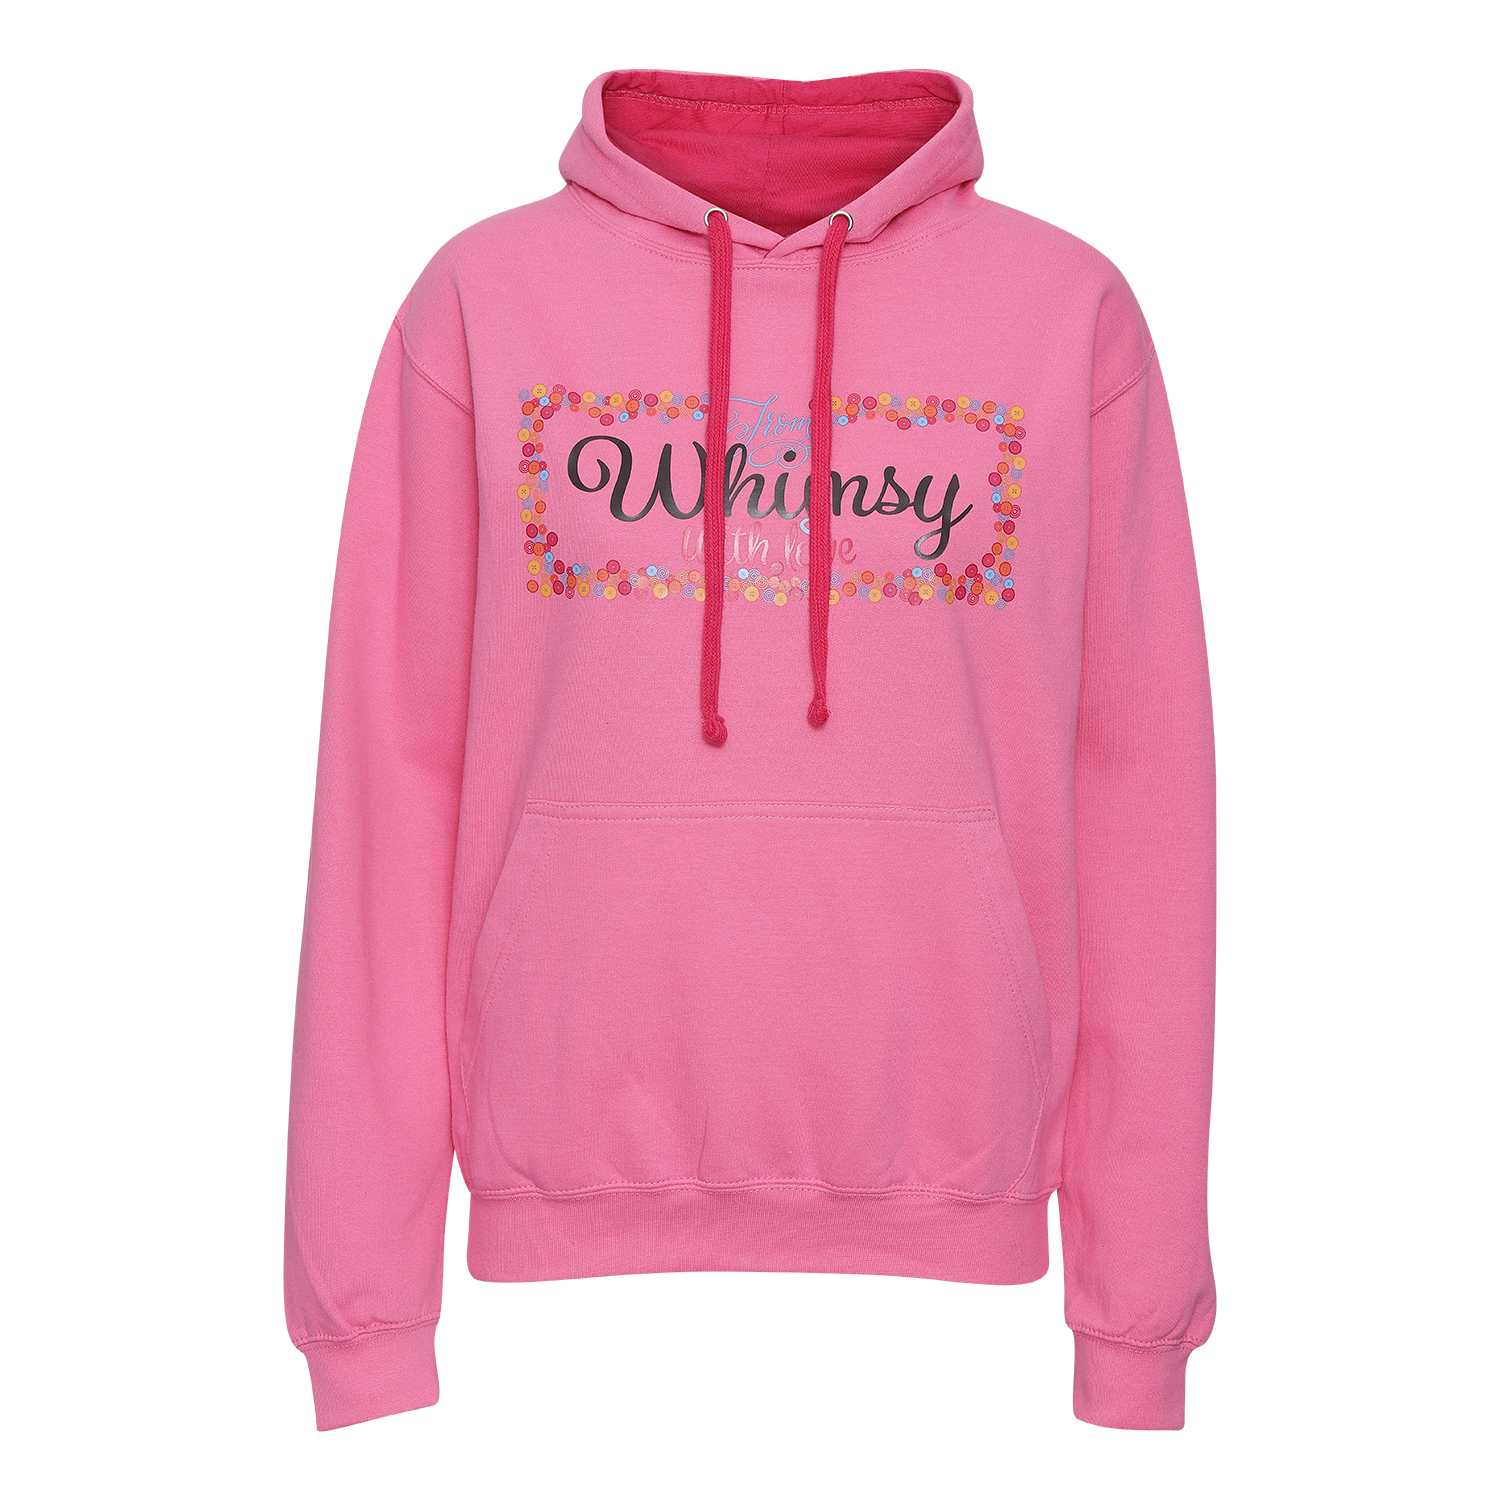 From Whimsy with Love Hoodie